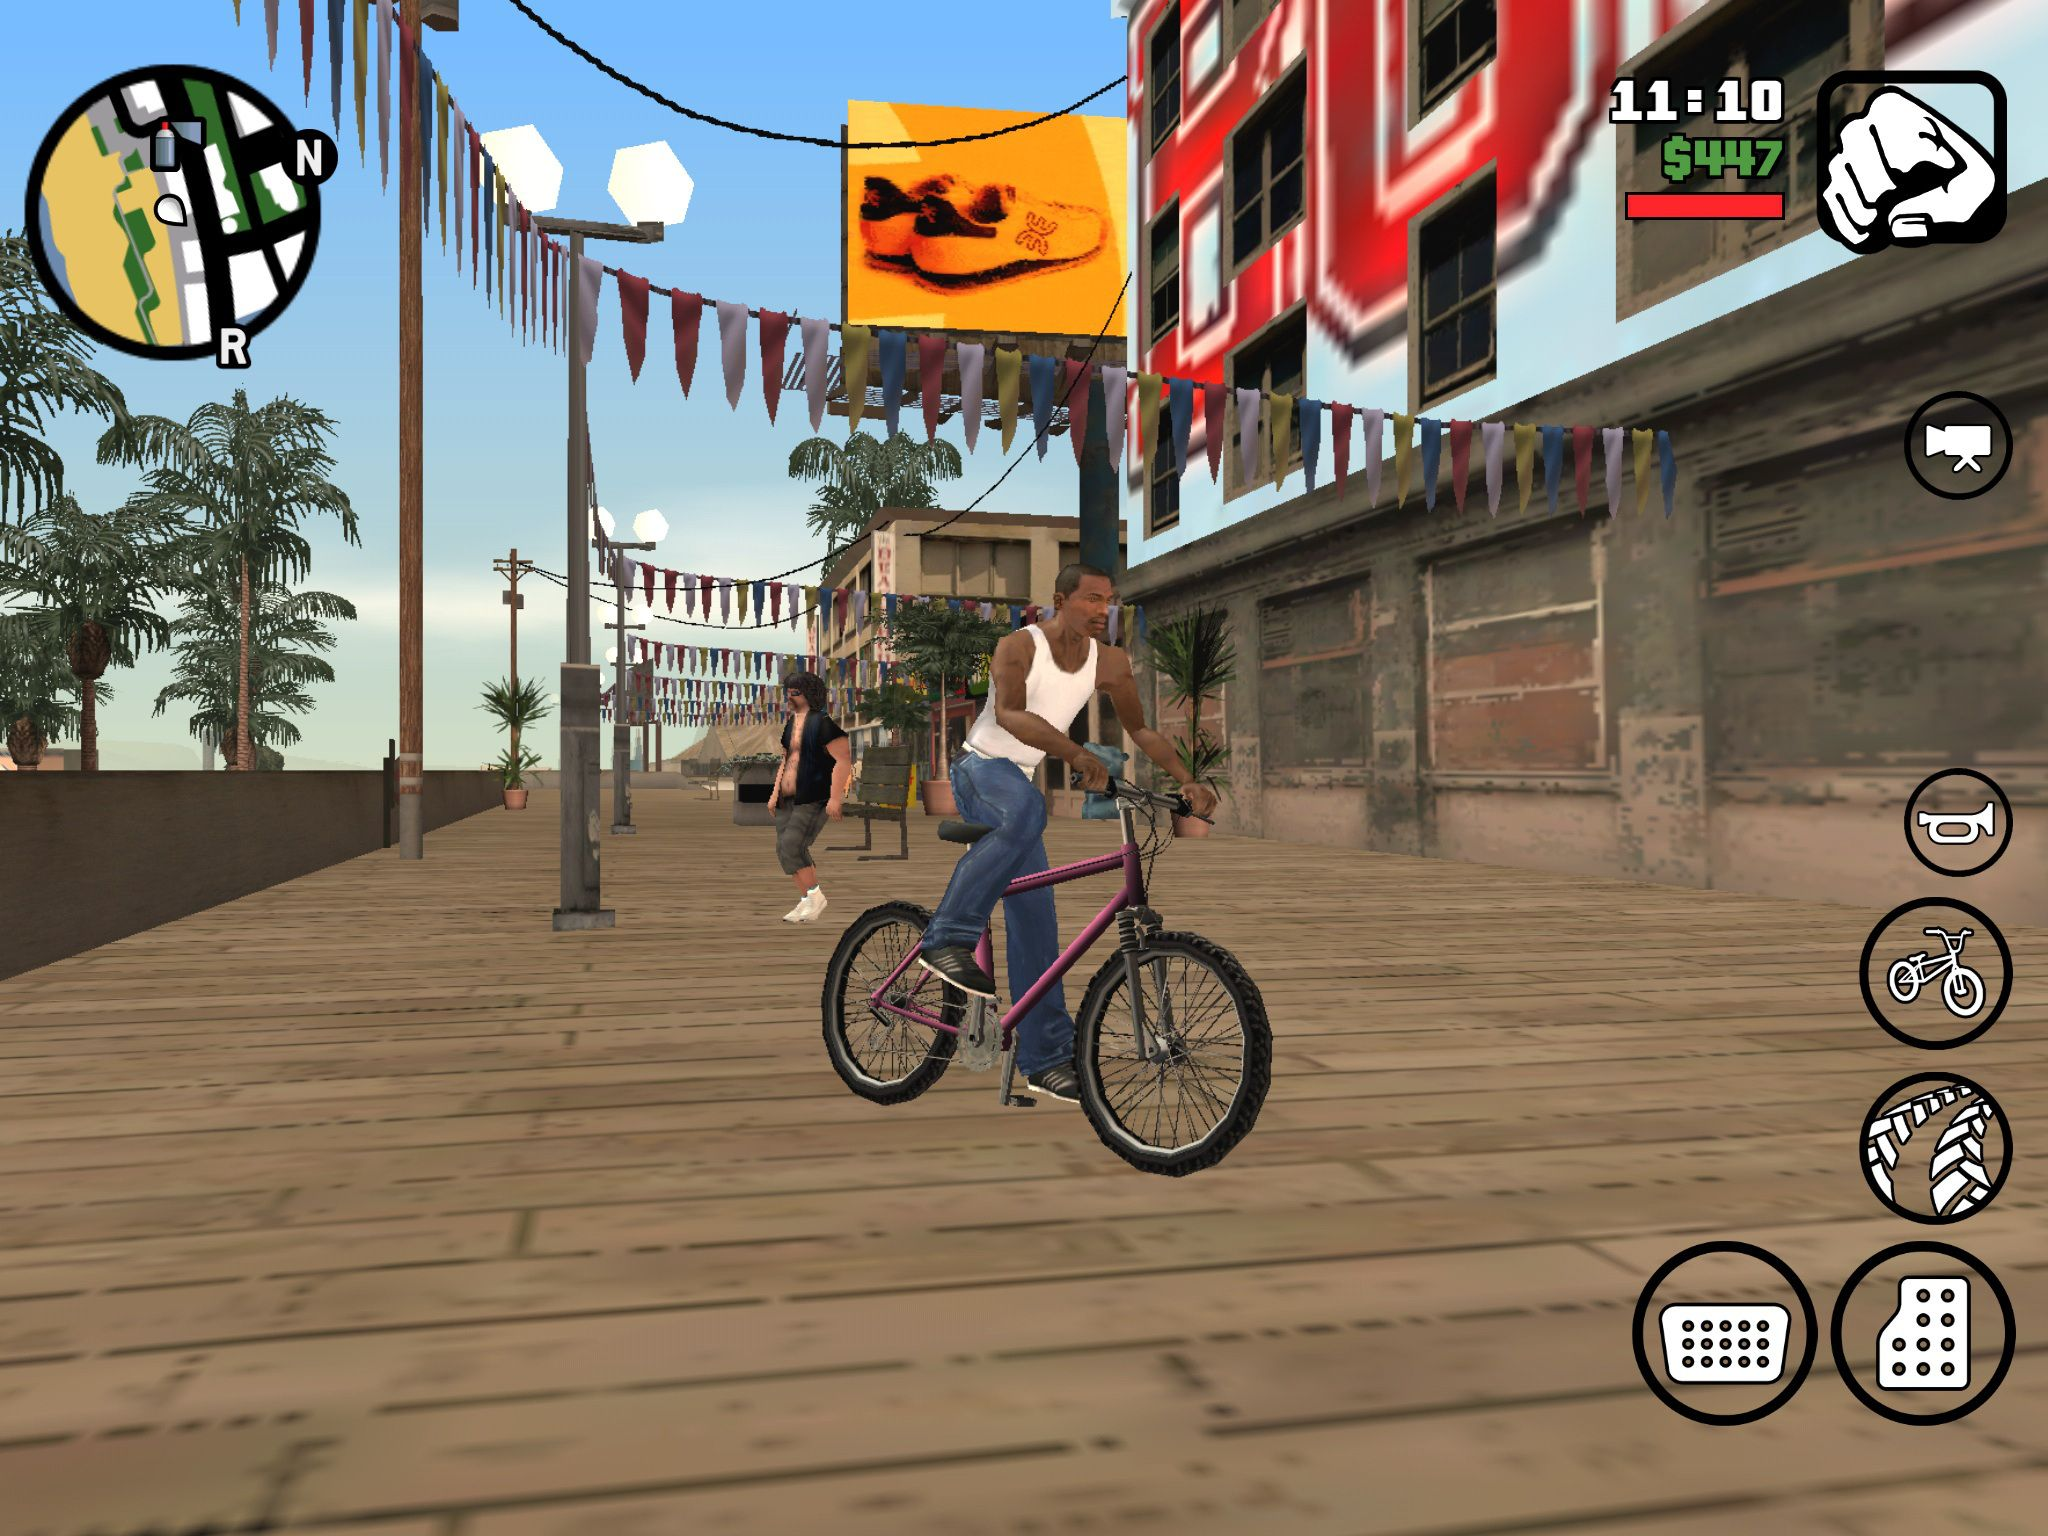 san andreas free download full version for pc game